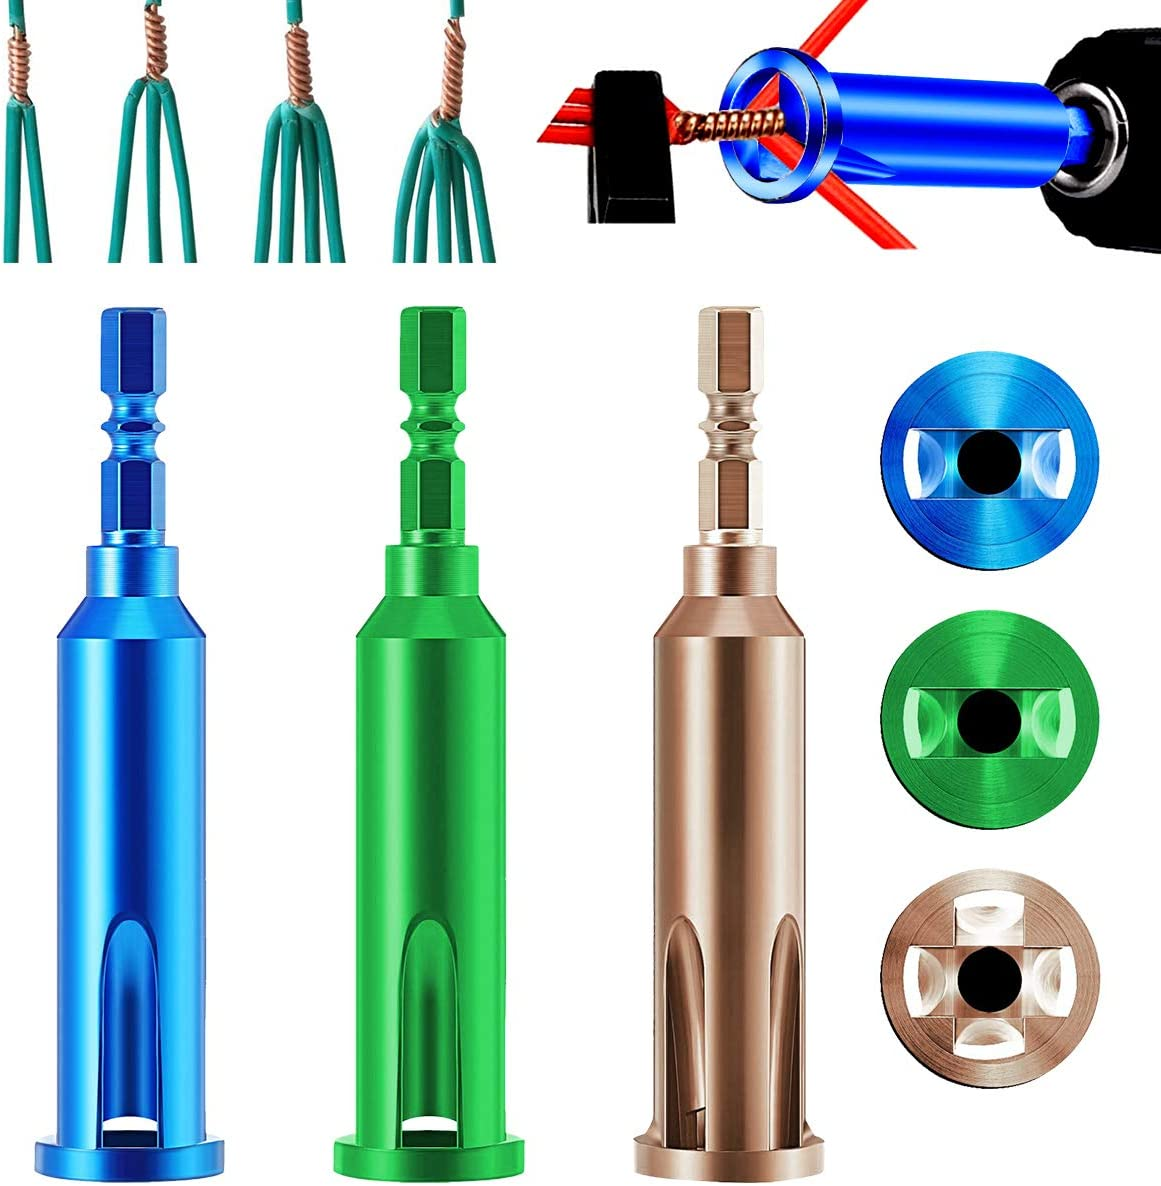 3PCS Wire Stripping Twisting Tool 3 Lines and 5 Lines Wire Stripper and Twister Universal Electrical Cable Quick Connector Hand Tool Adapter for Power Drill Drivers 3PC